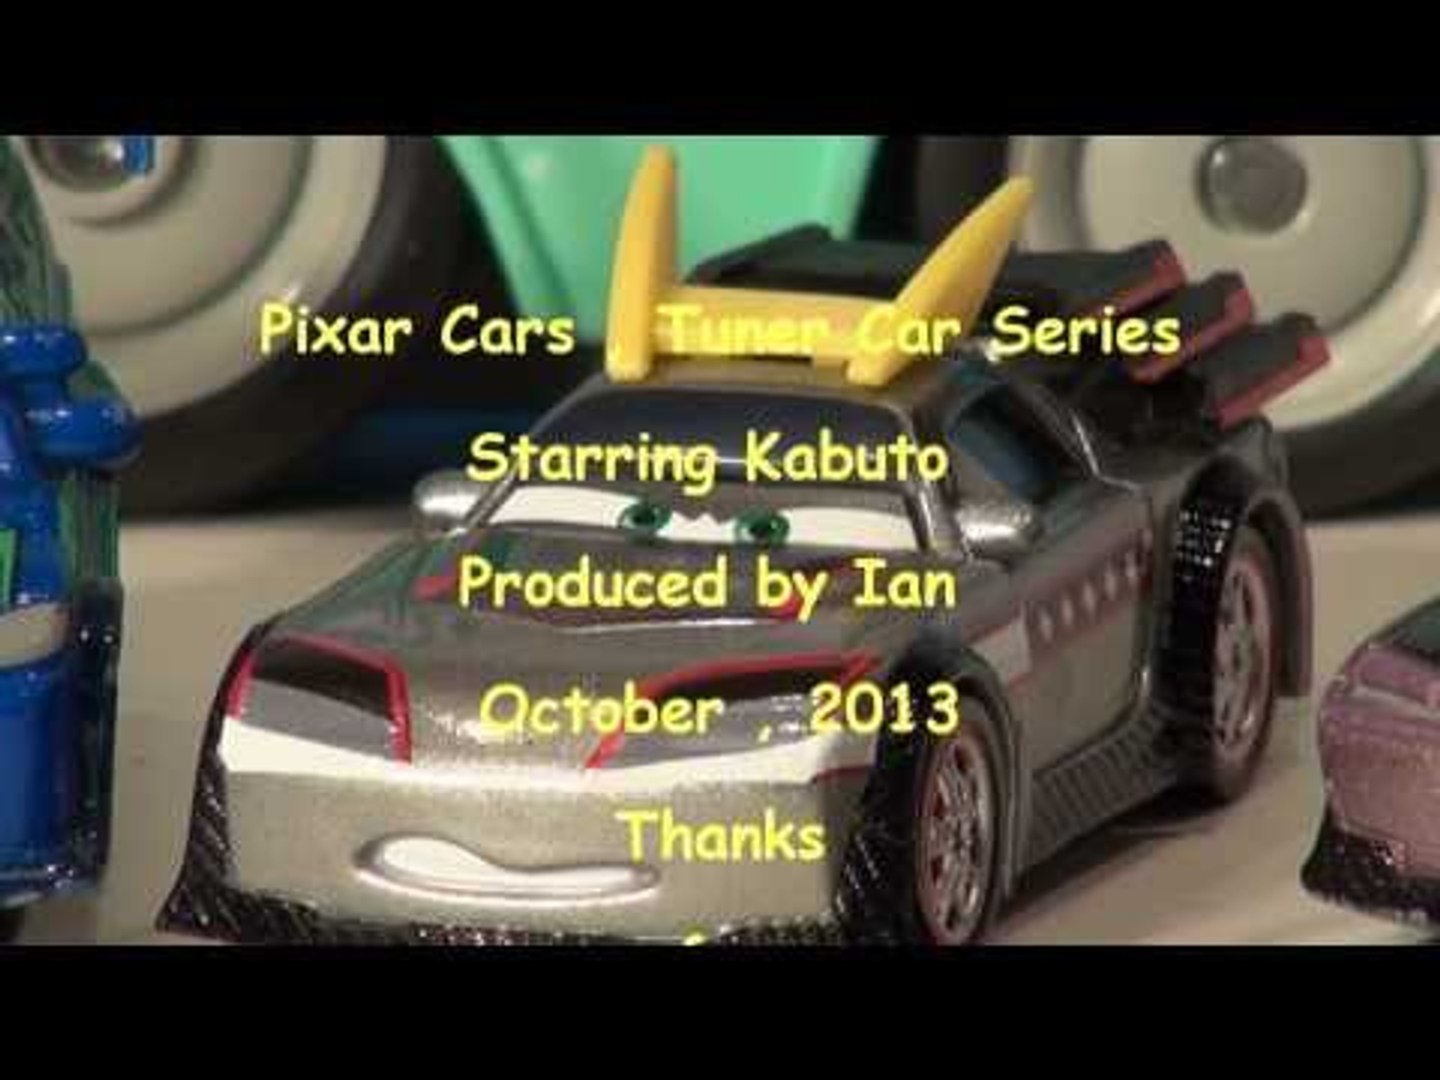 Pixar Cars with Kabuto from the Tuner Series, with Boost DJ and Wingo